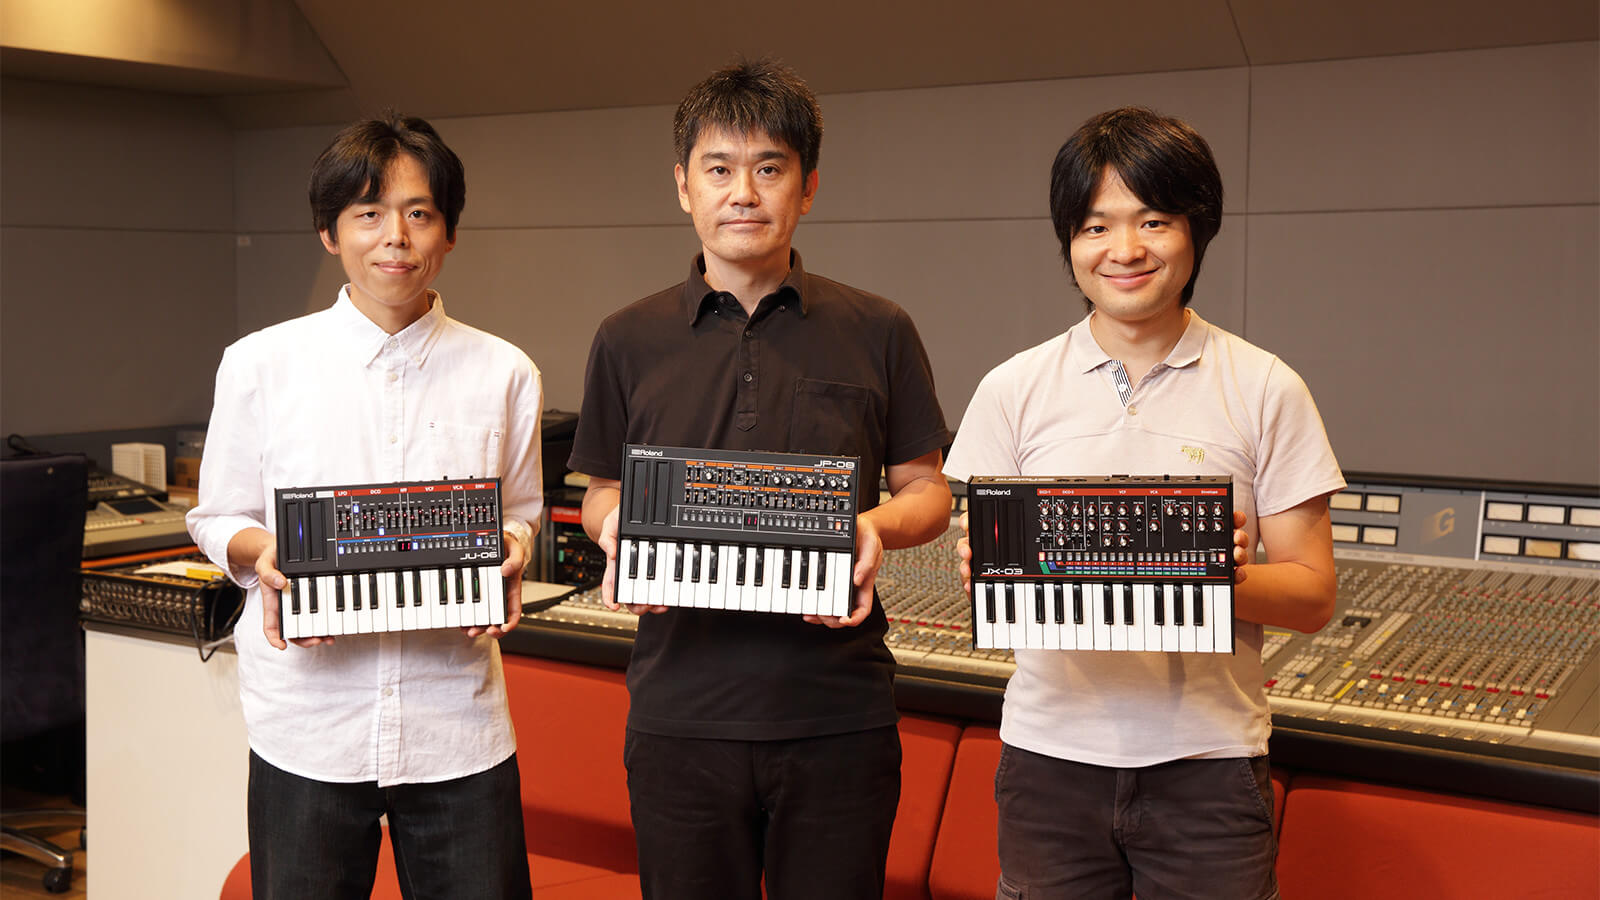 From left to right: Masato Ohnishi, Takeshi Tojo, and Hirotake Tohyama.